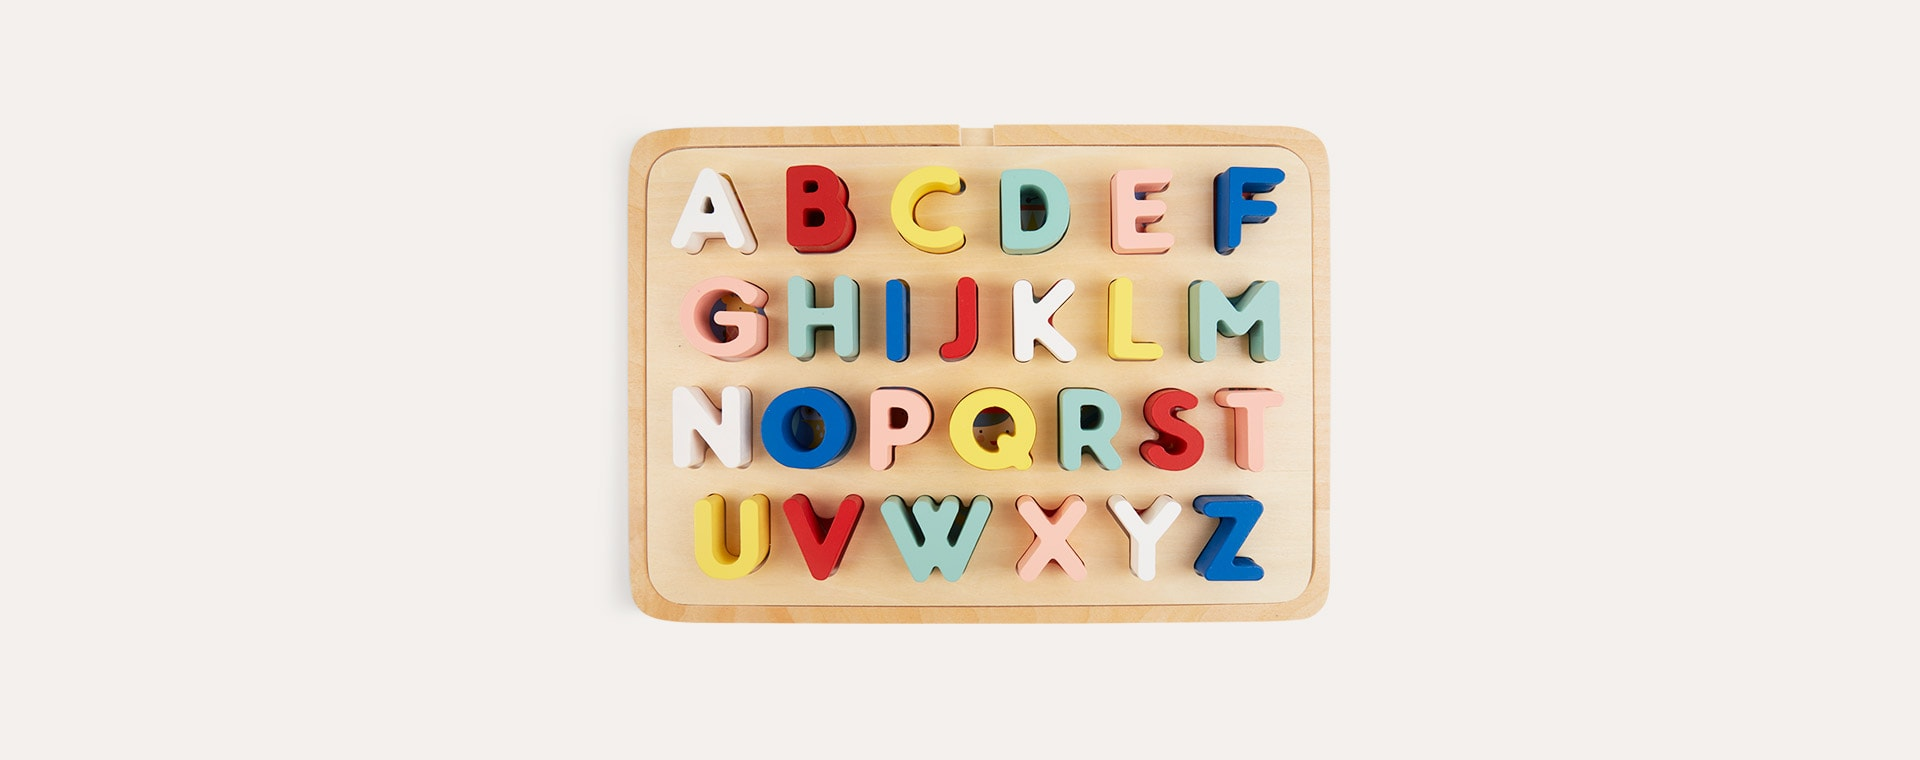 Multi Petit Collage Multi-Language Alphabet Wooden Tray Puzzle